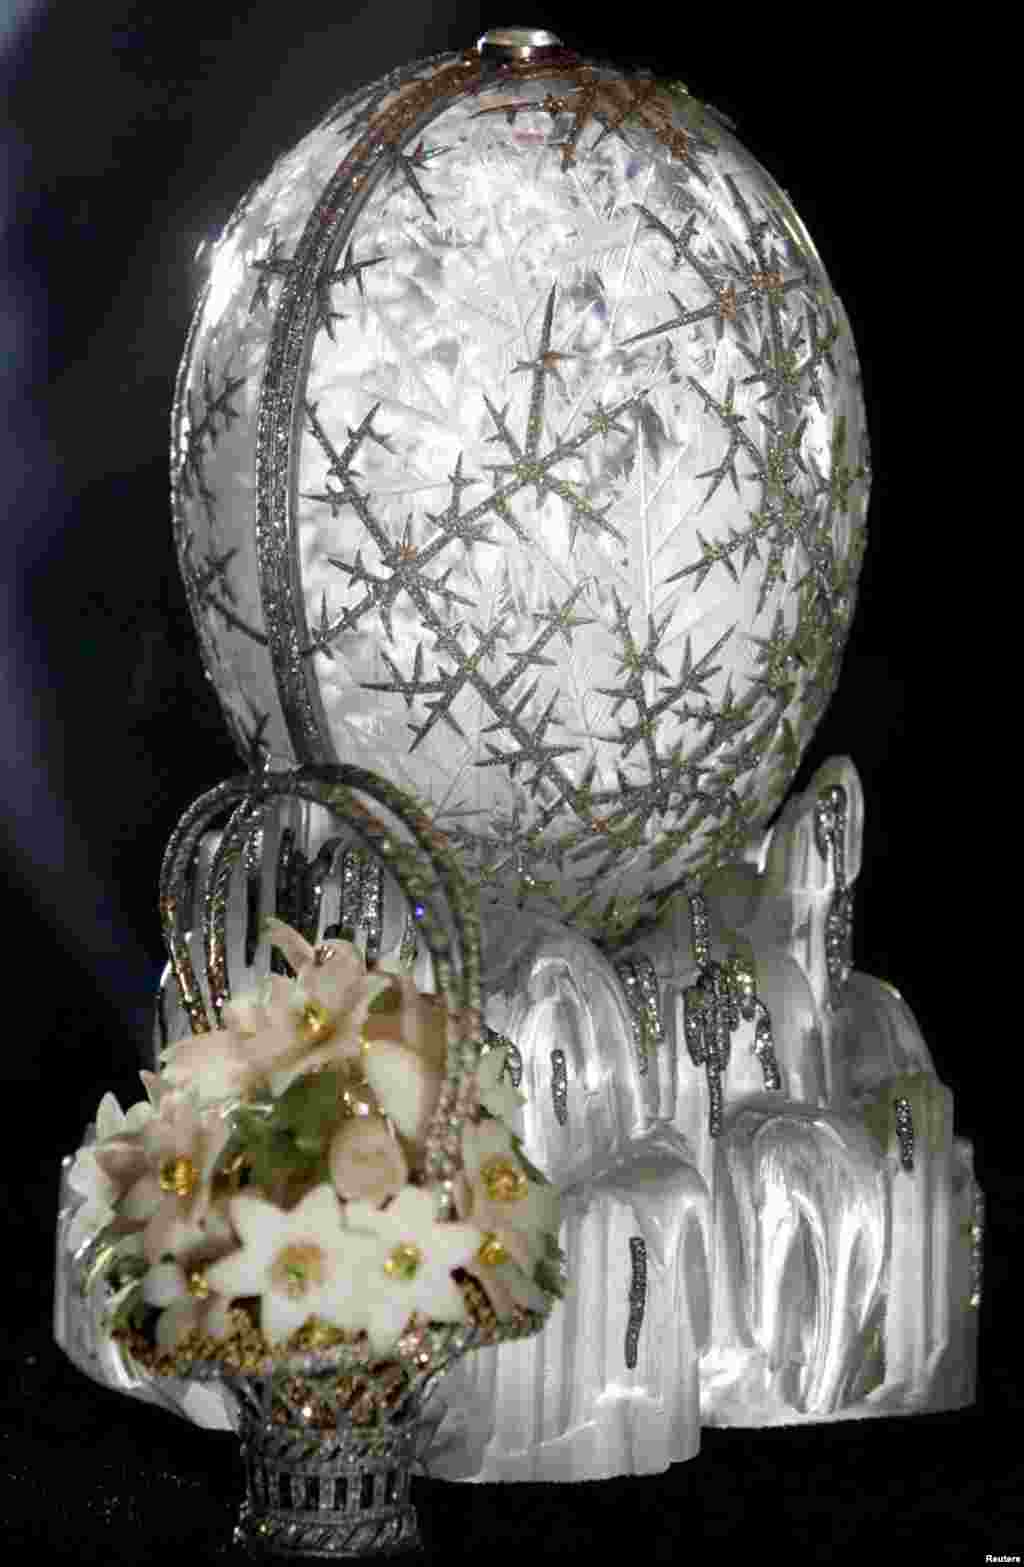 Over the next three decades, Carl Faberge would create another 49 eggs for Russia's last two tsars. Pictured is the Winter Egg, one of his most famous, crafted from rock crystal and etched with platinum and diamonds to resemble frost. The 14-centimeter egg opens to reveal a bejeweled basket of spring flowers.